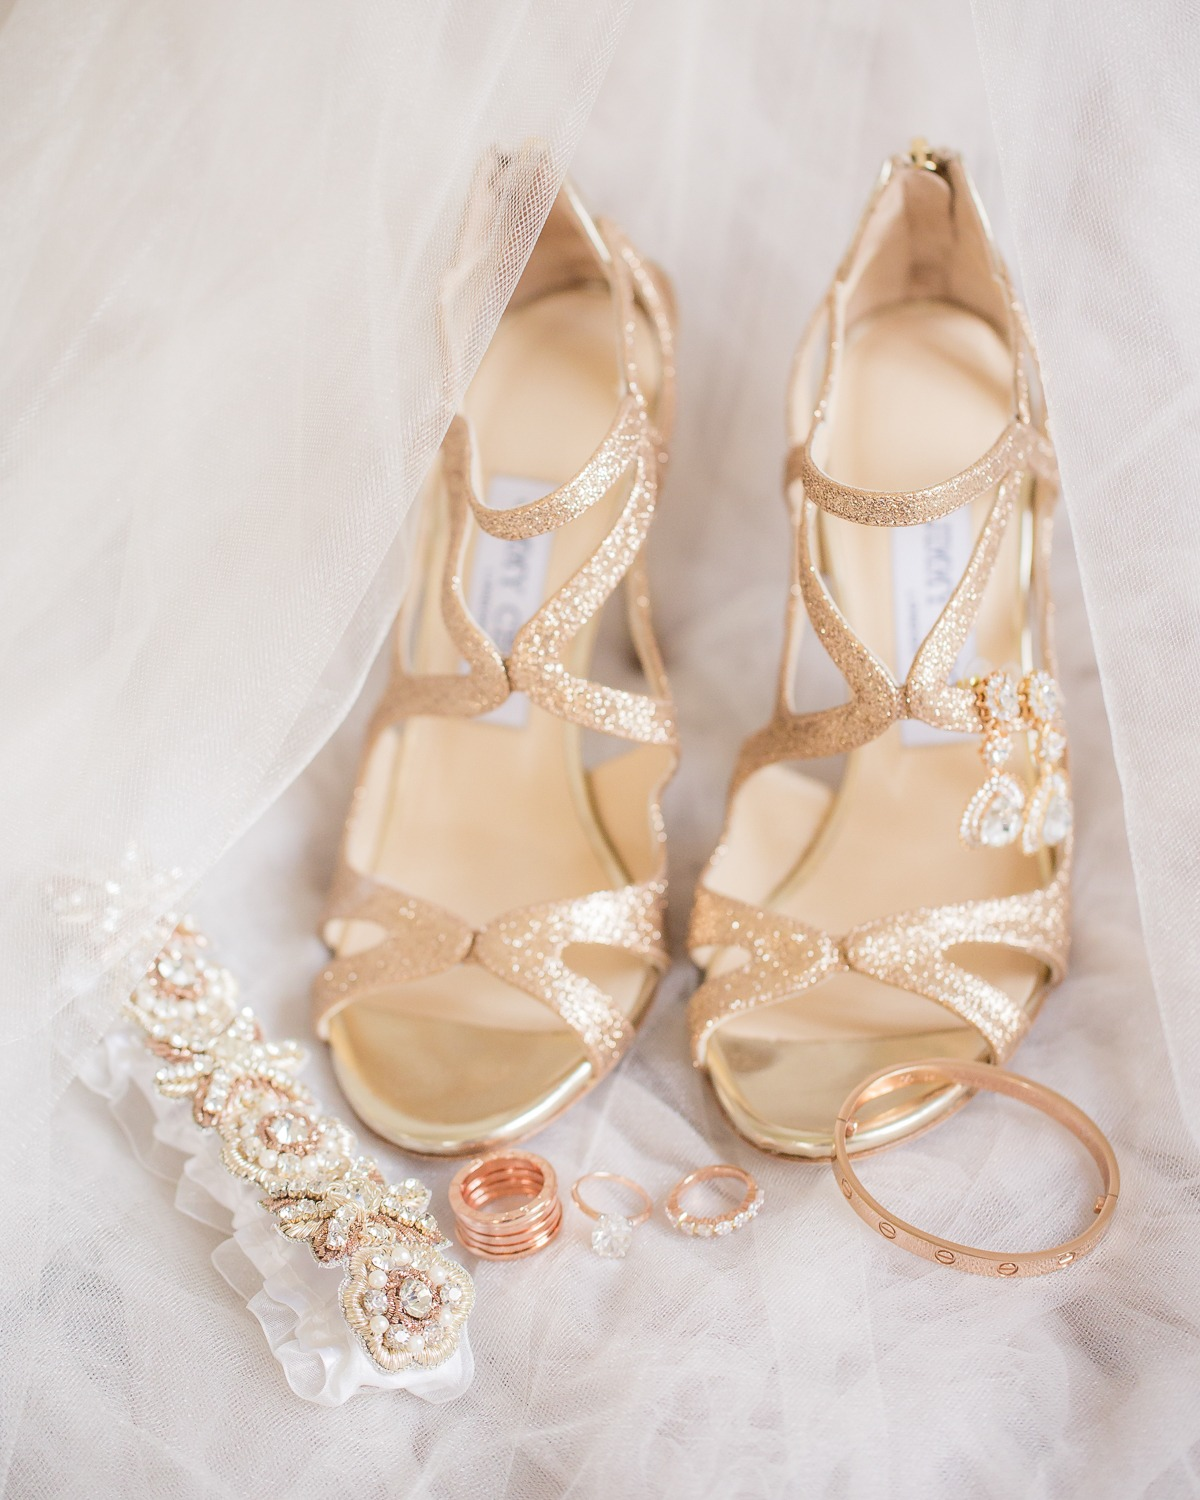 Gold Jimmy Choo wedding heels